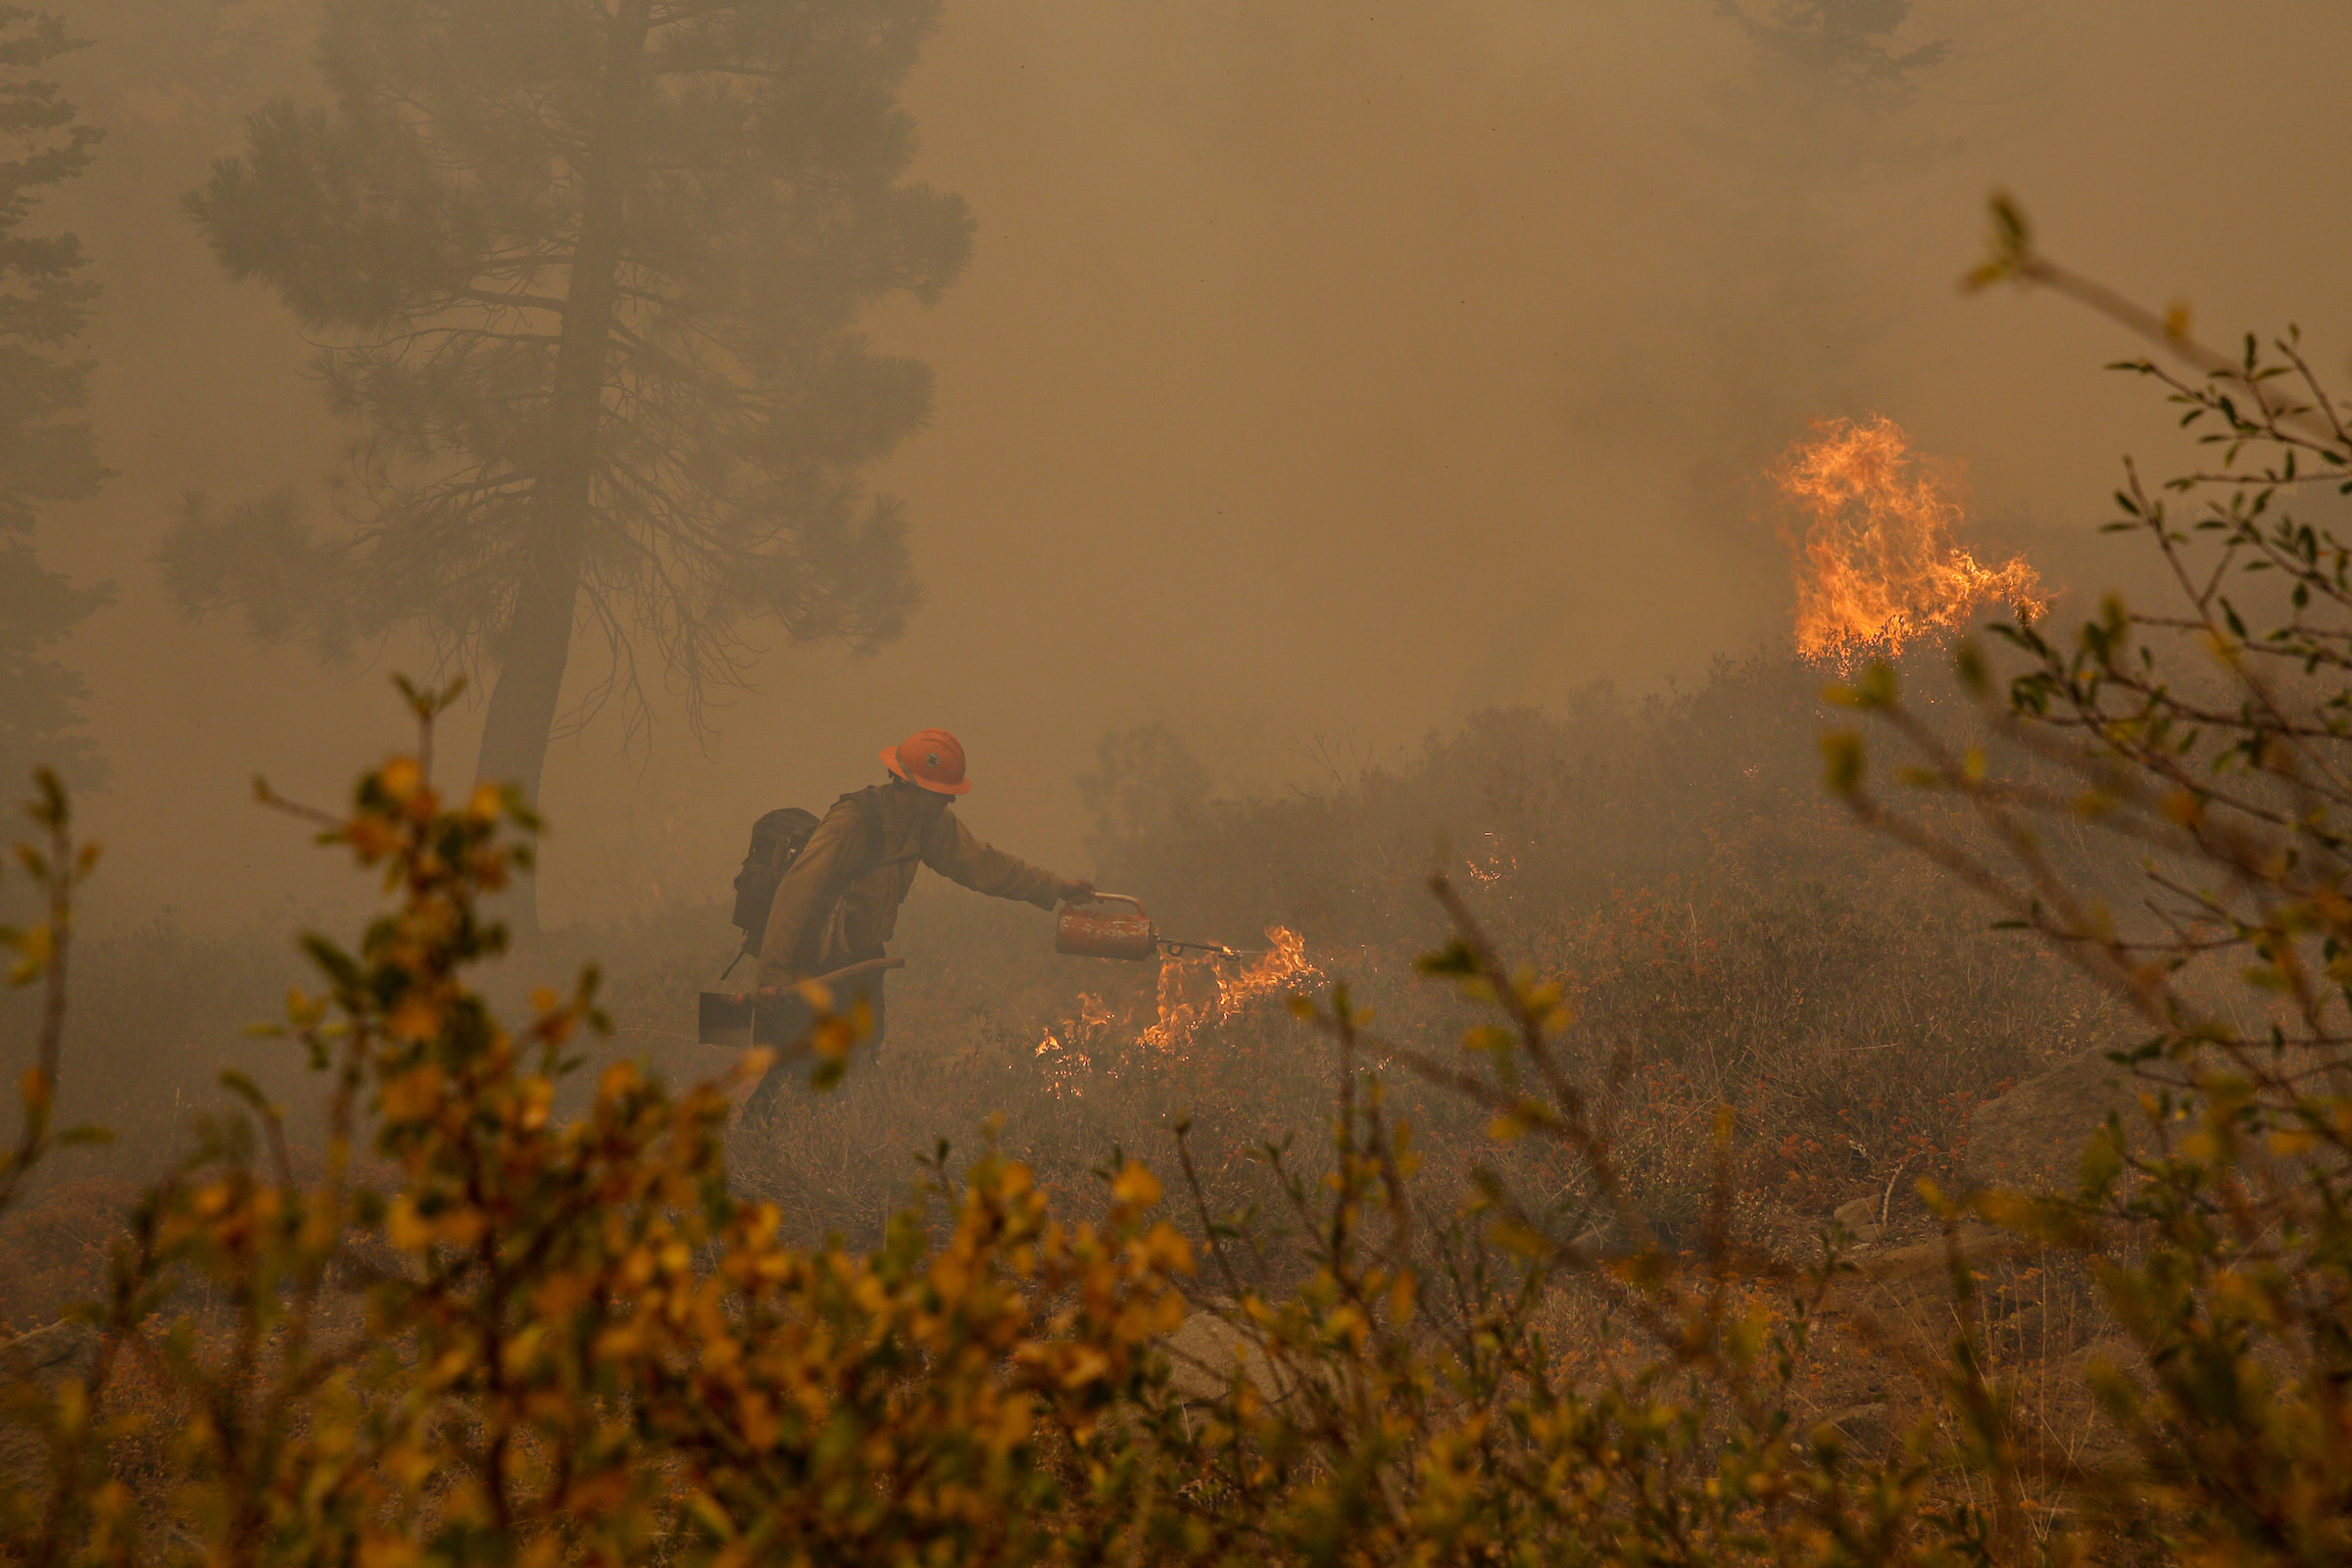 A uniformed firefighter stands in a meadow and pours gas onto a fire